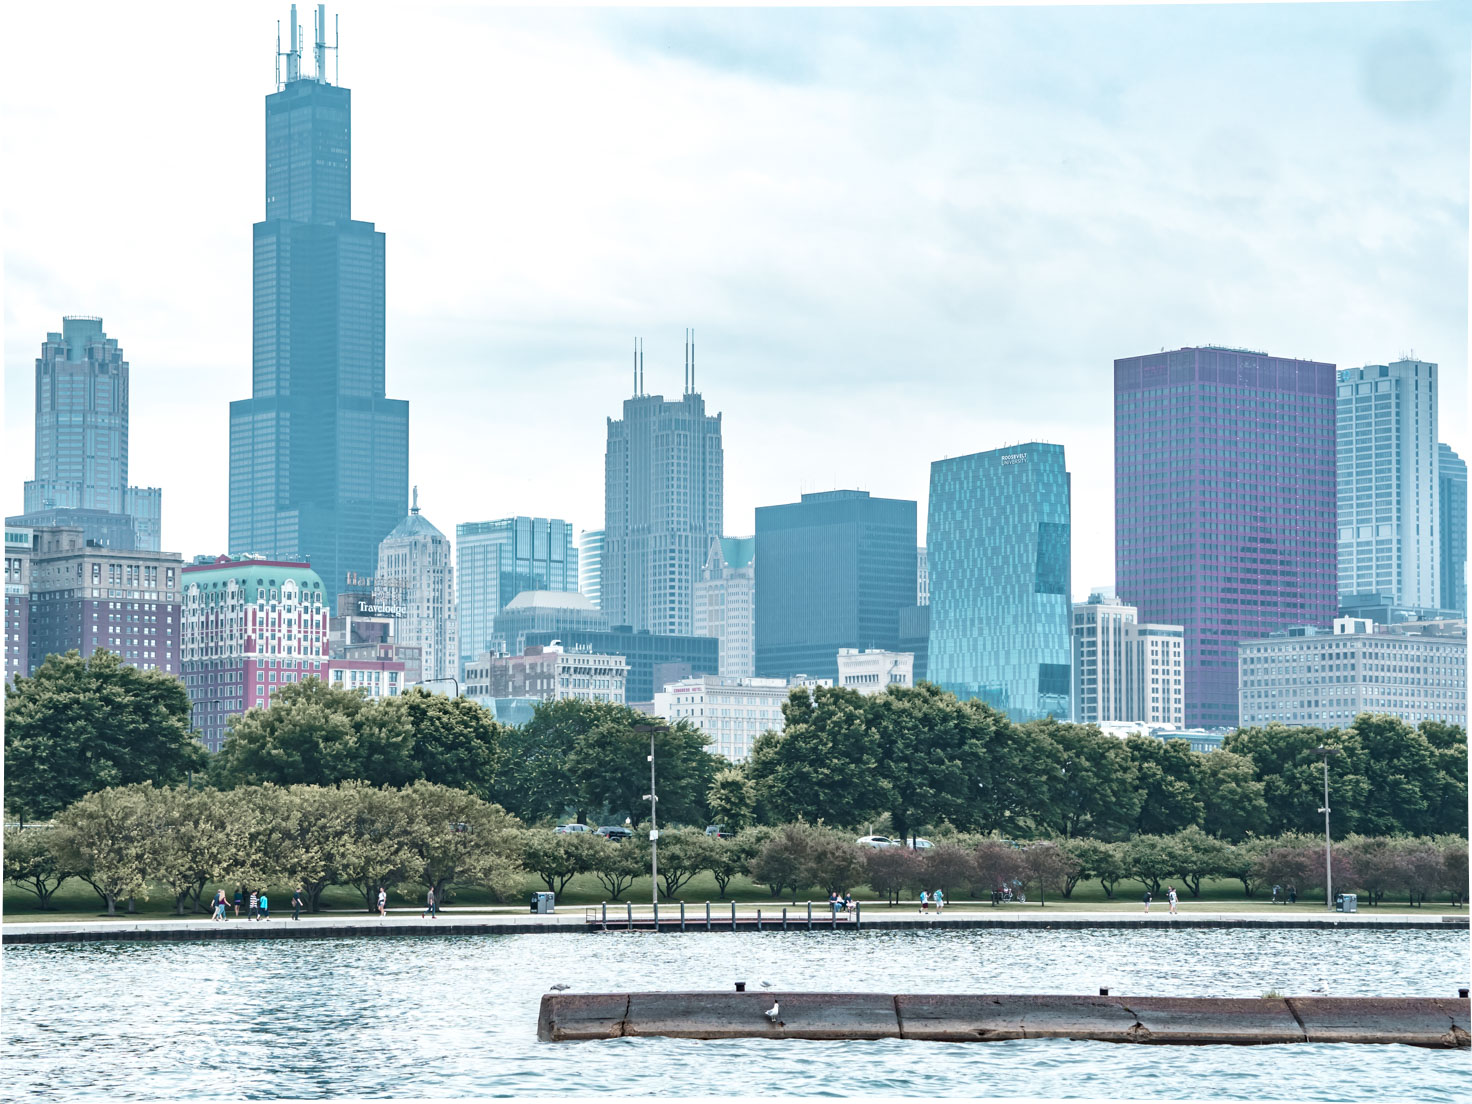 Chicago skyline and city mini guide by Chic Journal blog